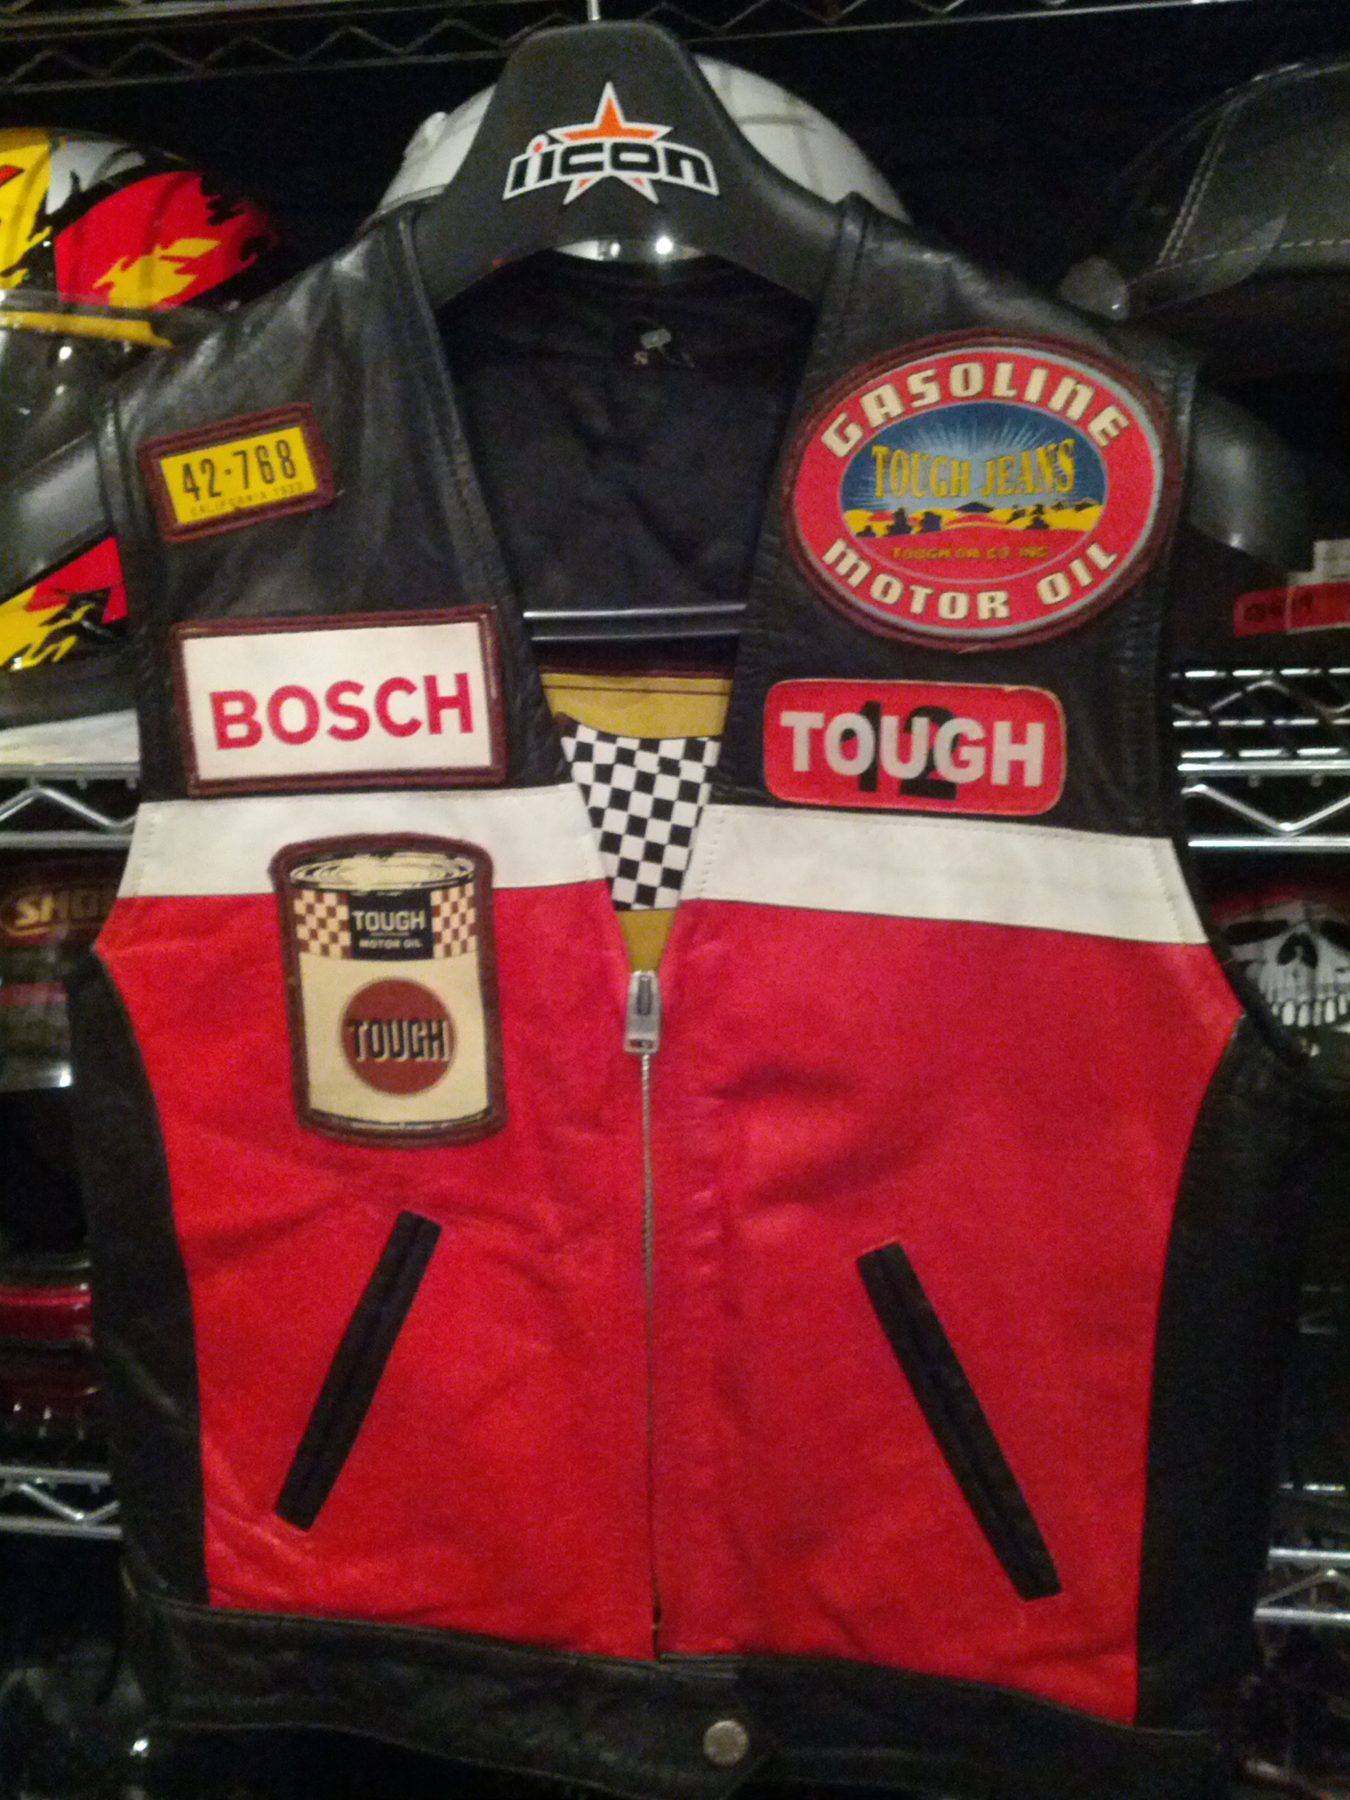 Toughest Vest in the Store